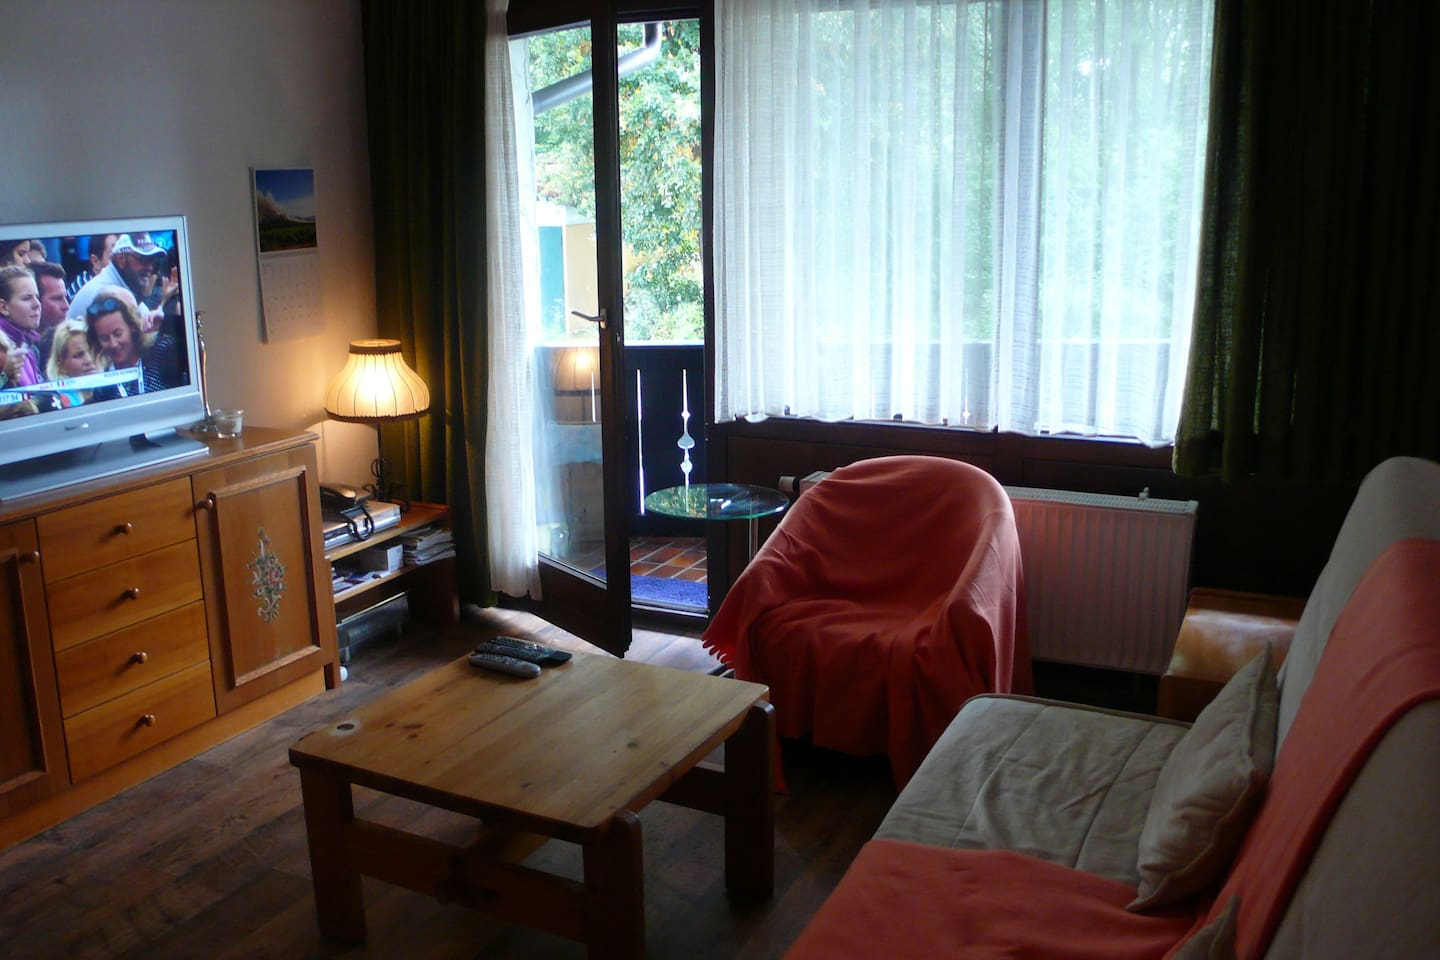 Apartment in Bad Aibling / Munich